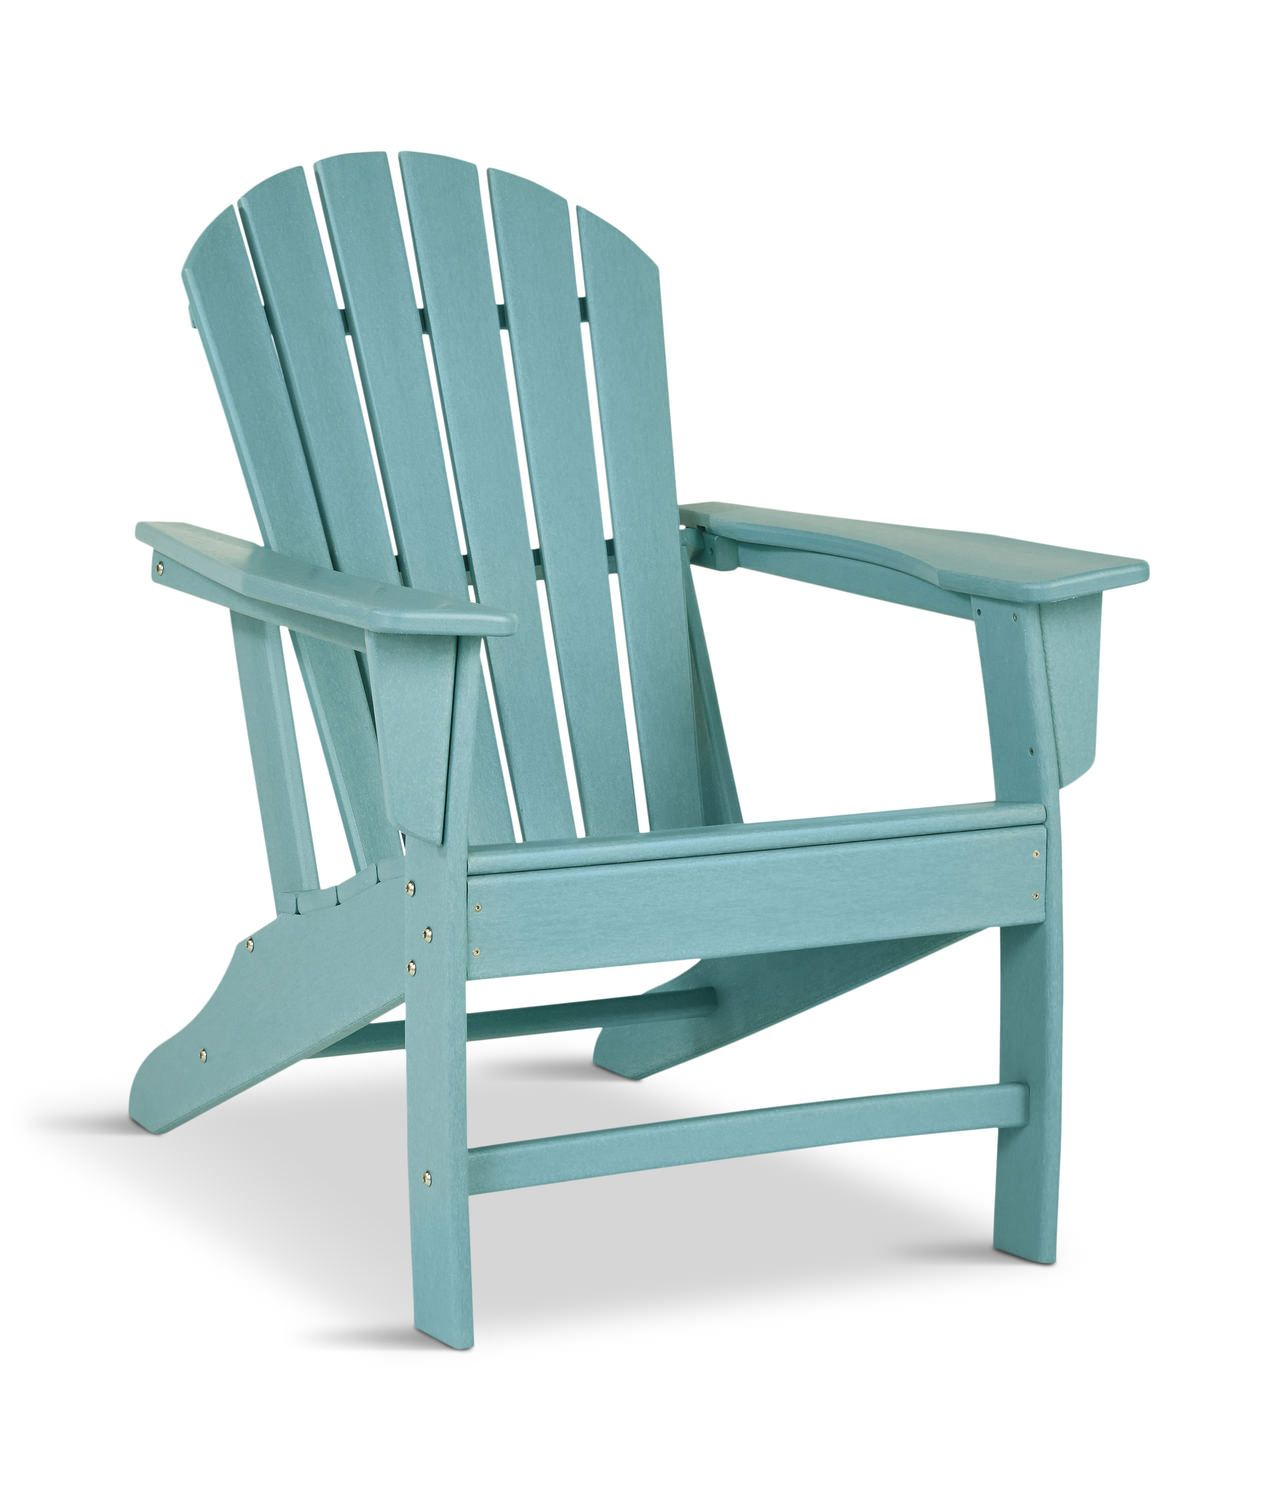 Sunset Adirondack Chair Adirondack Chair Adirondack Chairs Poolside Furniture